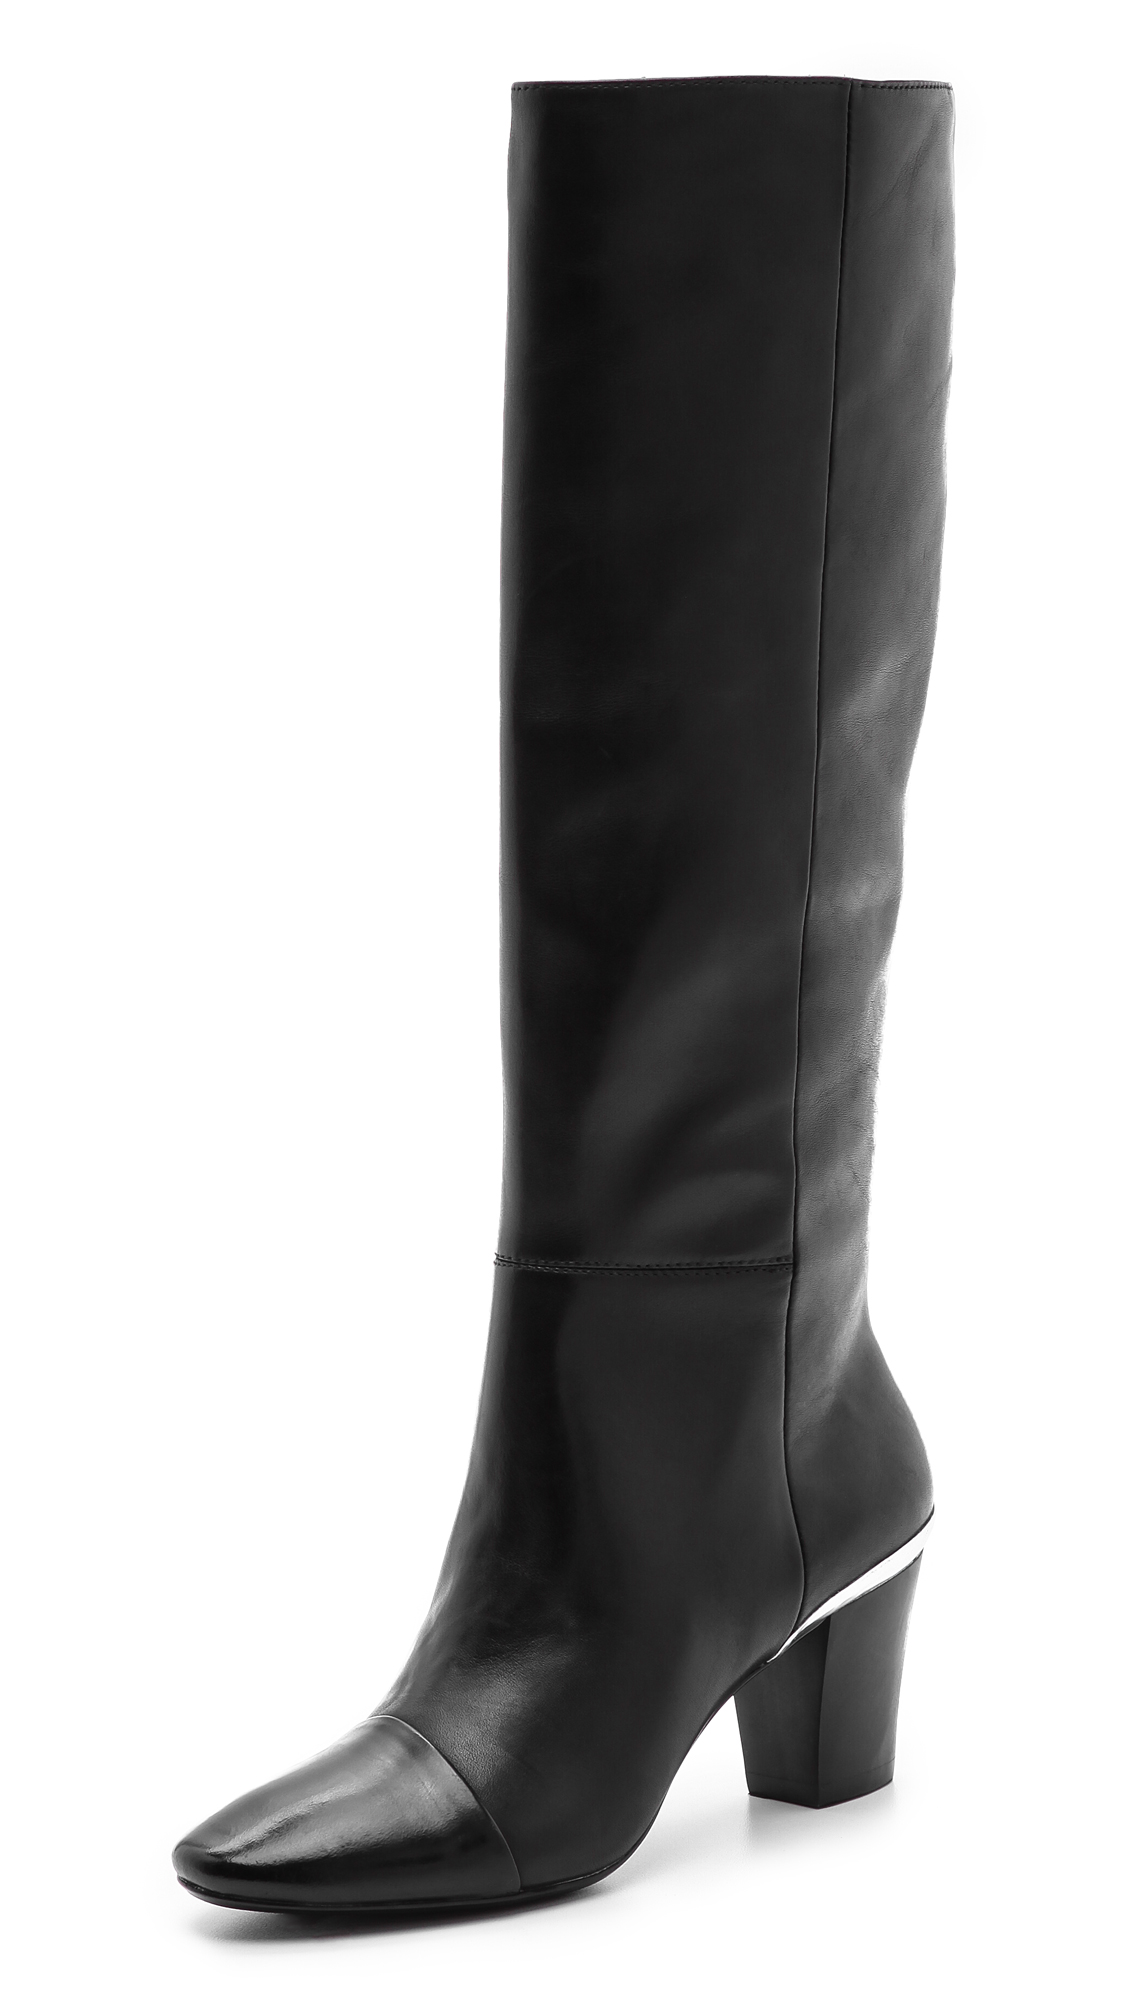 factory outlet ever popular outlet boutique DKNY Marion Mid Heel Tall Boots - Black - Lyst